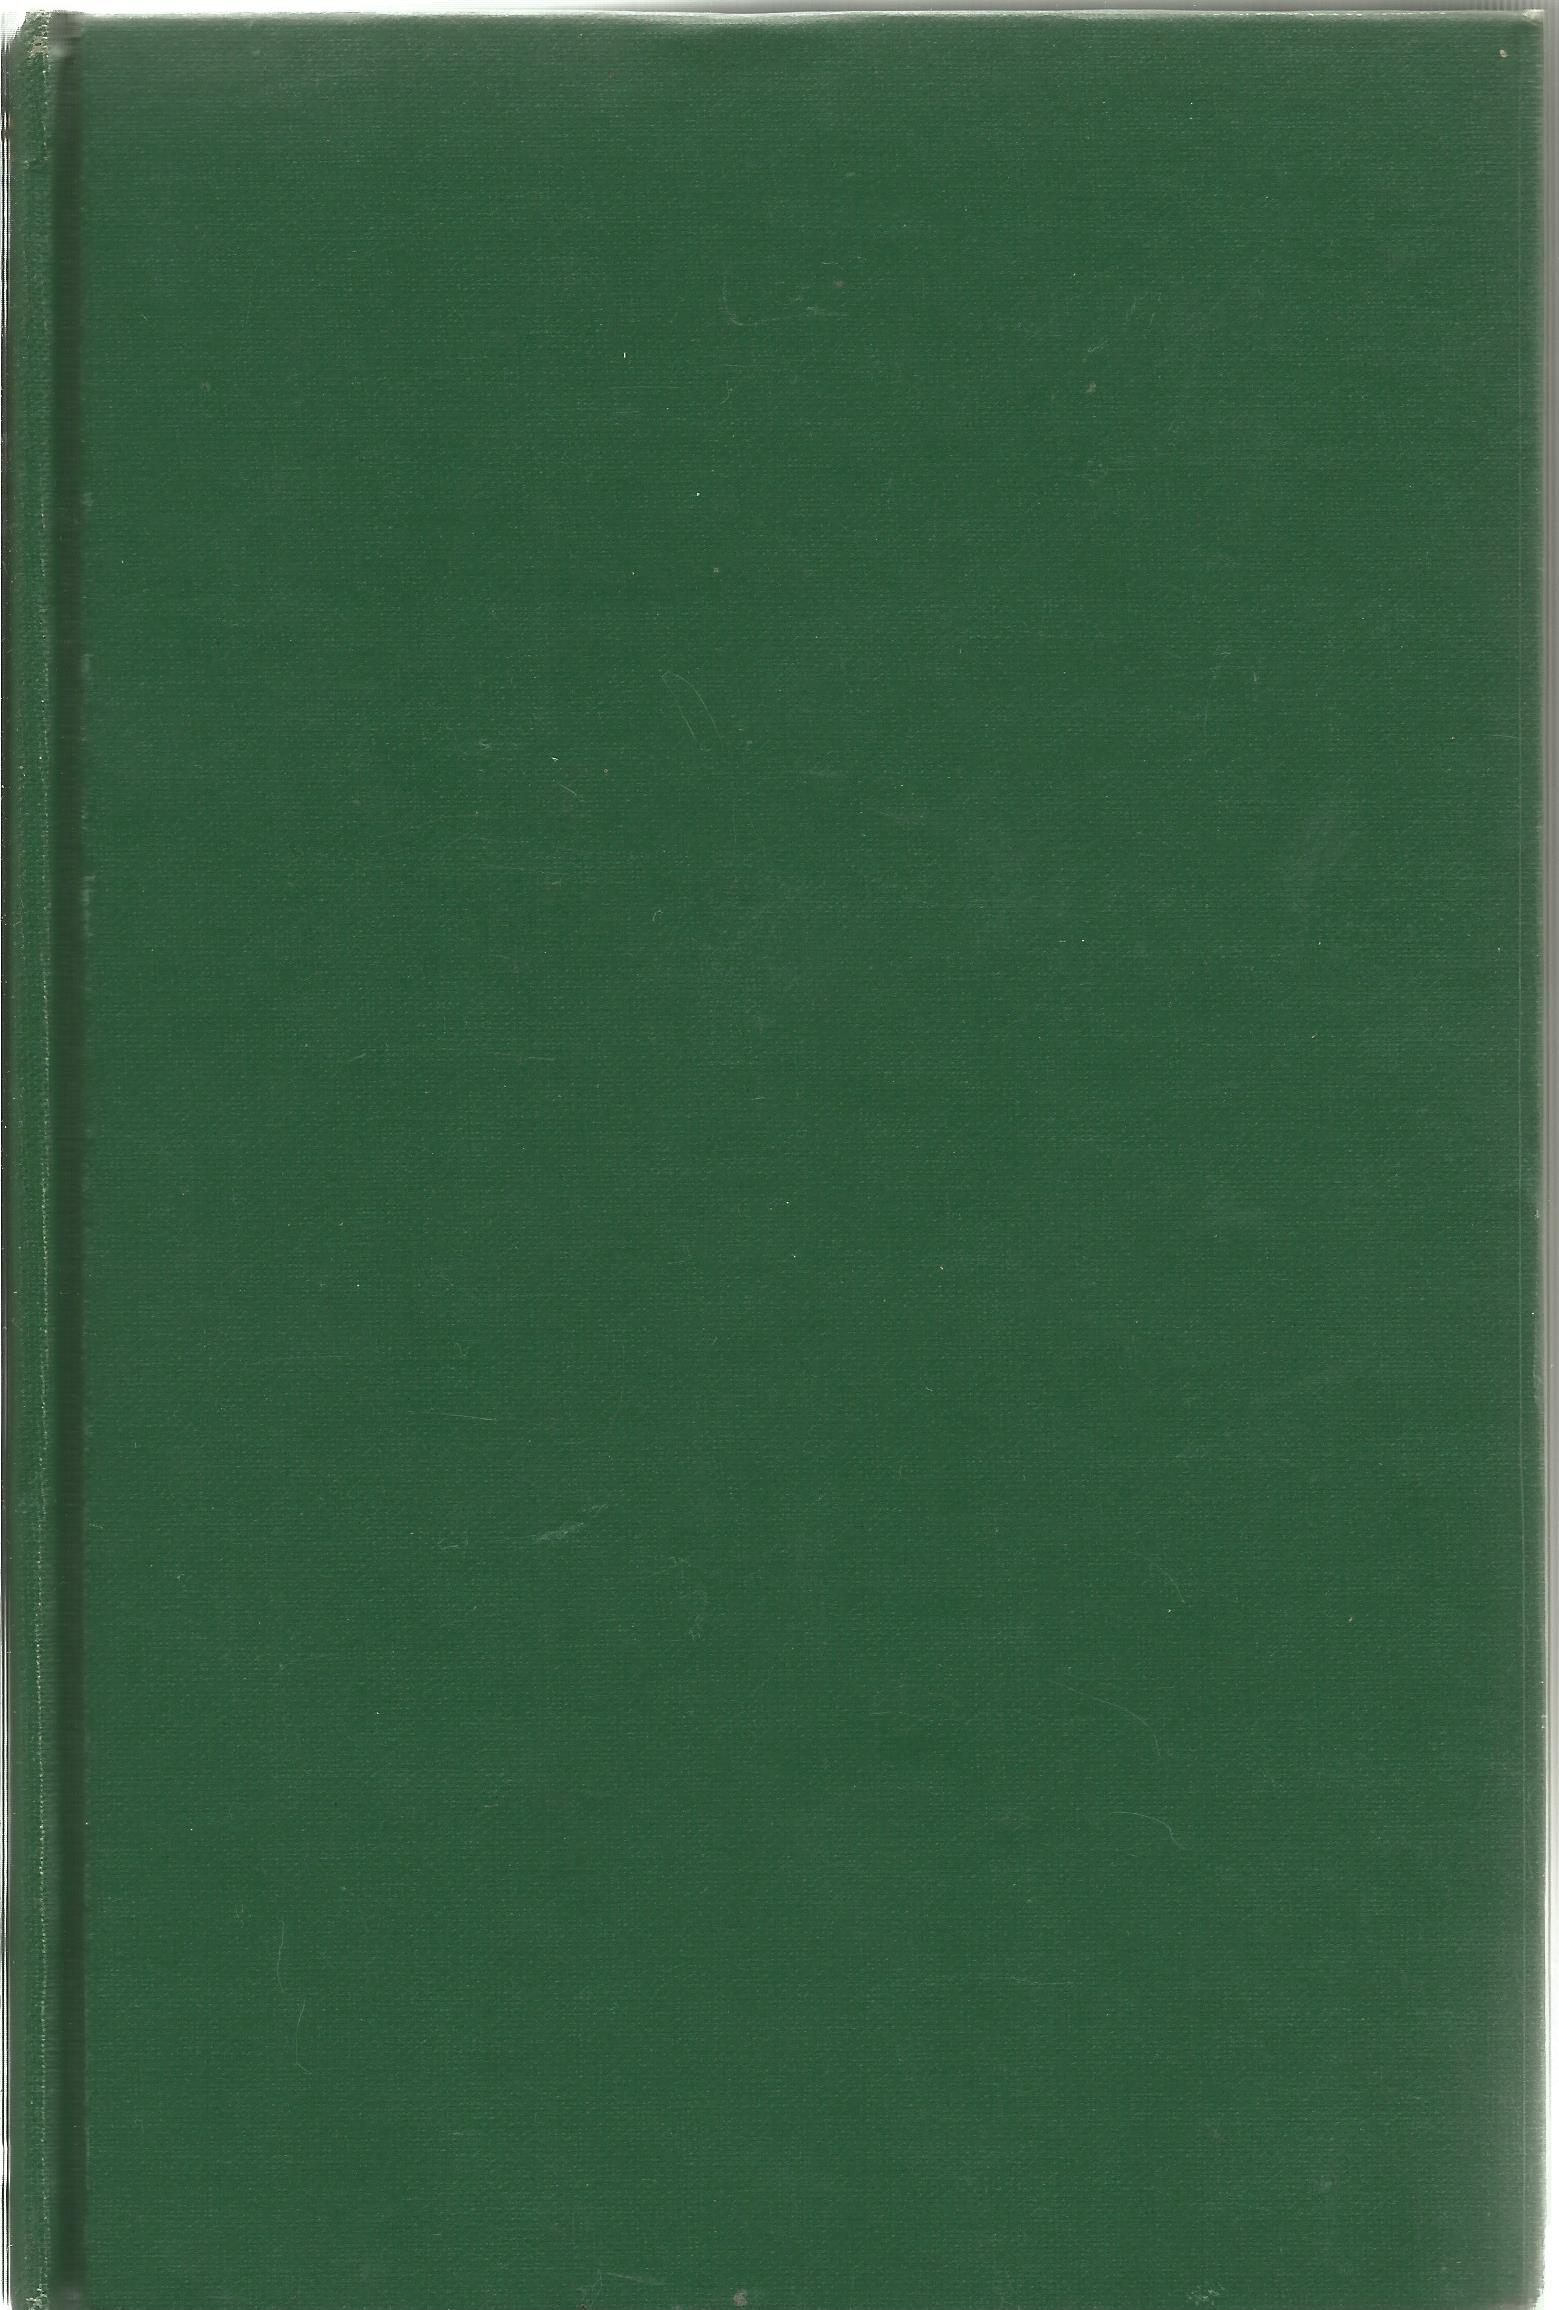 Charles Morgan Hardback Book Challenge to Venus 1957 signed by the Author on the First Page and